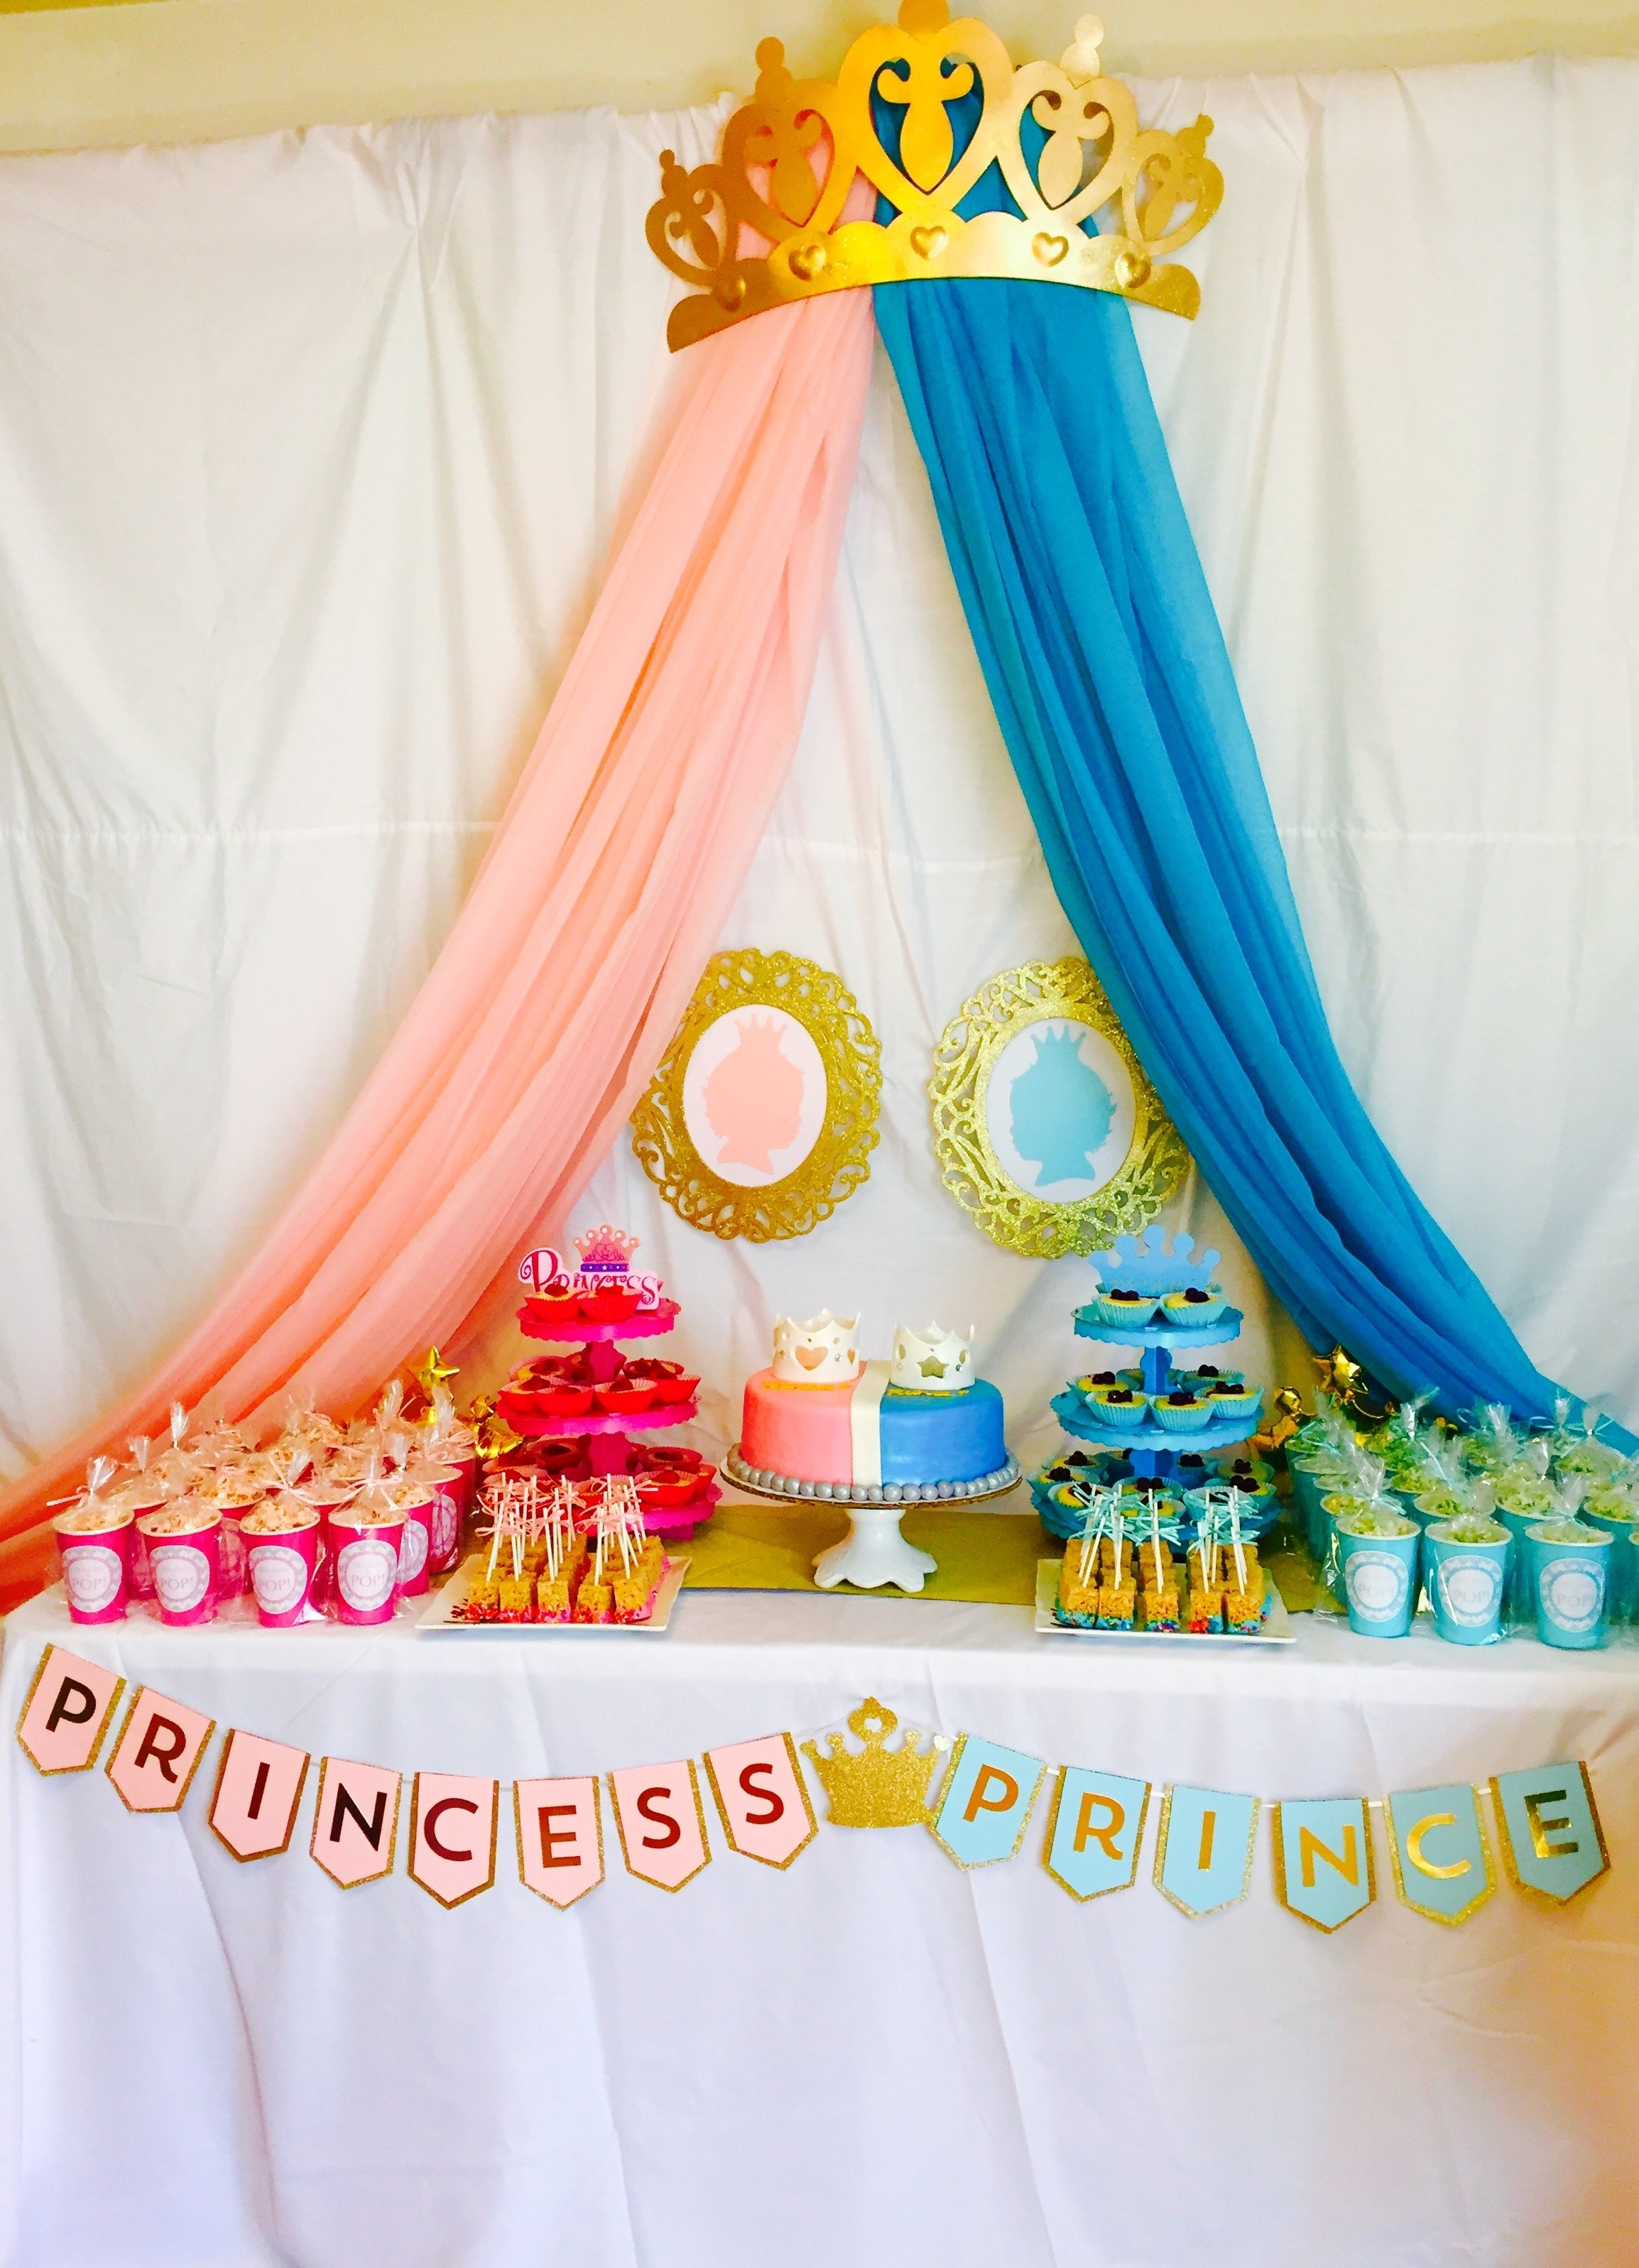 10 Elegant Princess And Prince Party Ideas ideas collection gender reveal princess or prince theme decors 2020